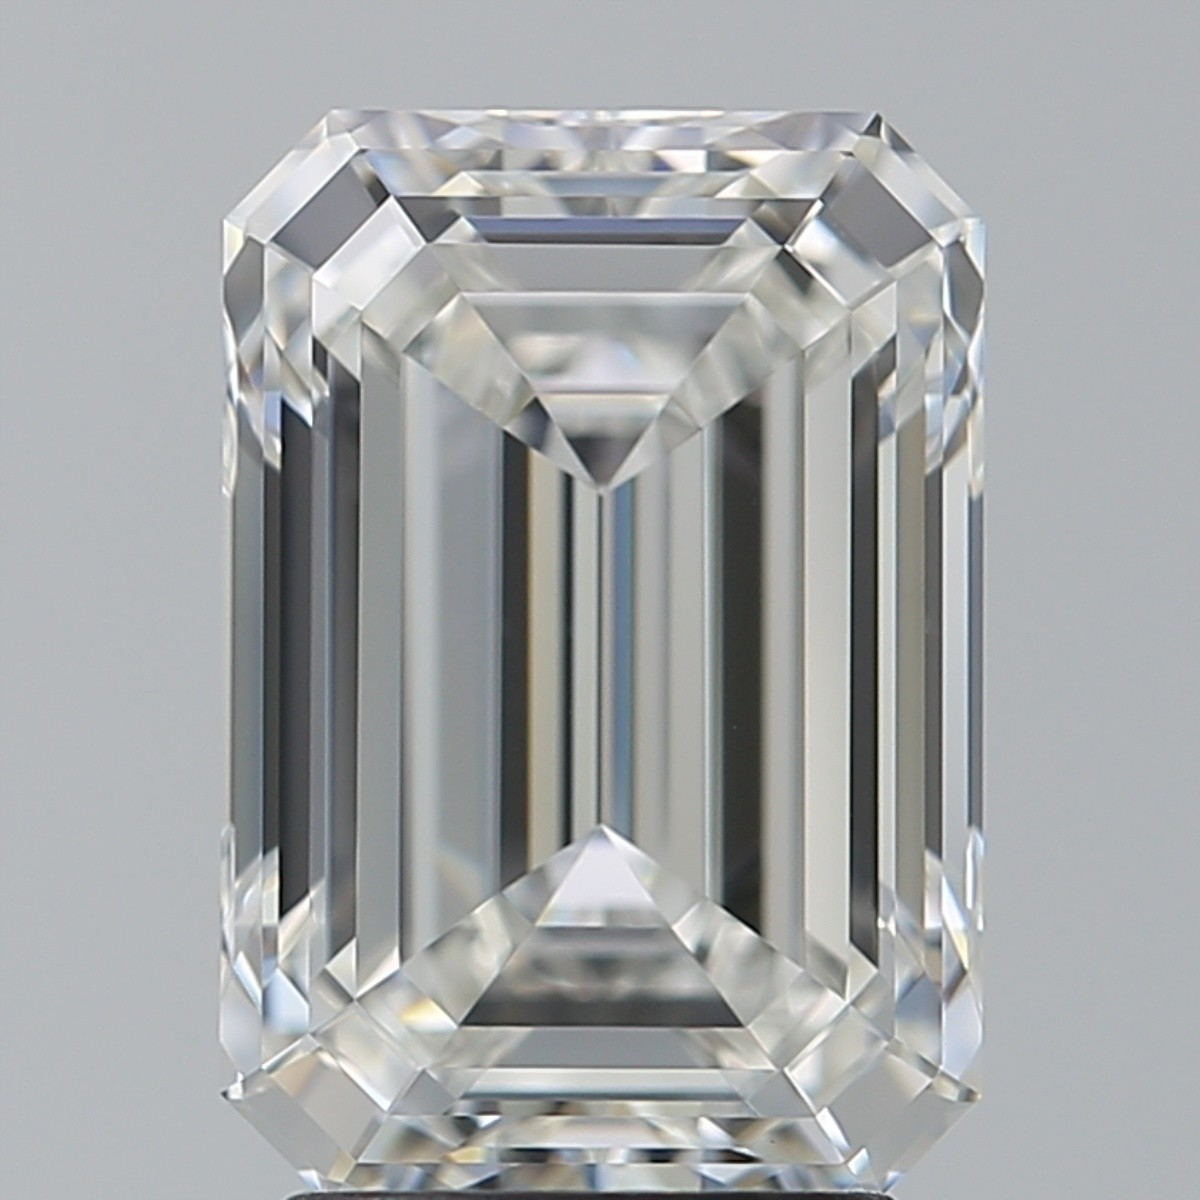 3.22 Carat Emerald Diamond (G/VVS2)